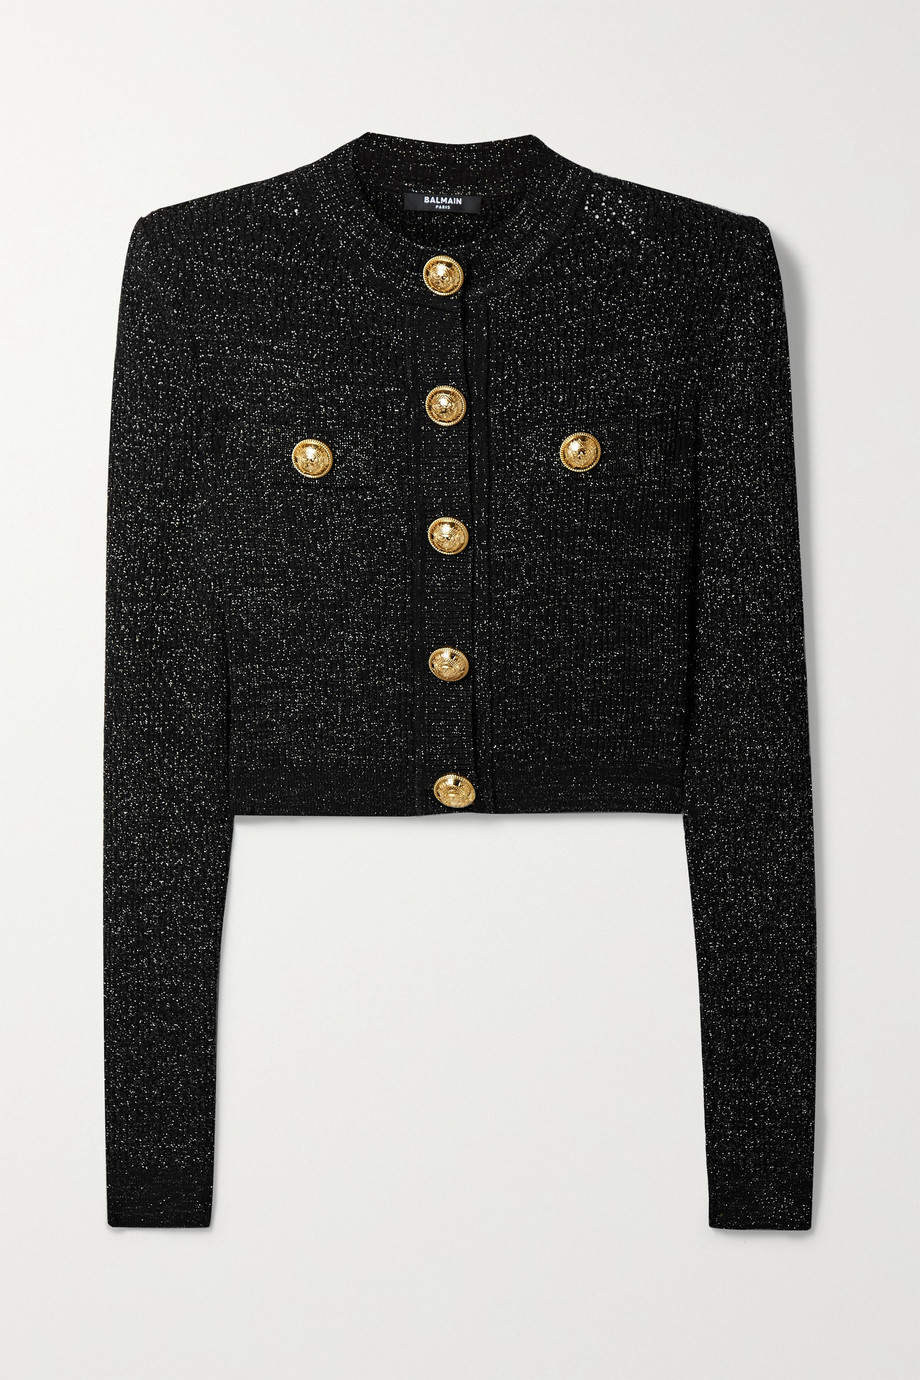 Balmain Button-embellished metallic jacquard-knit cardigan